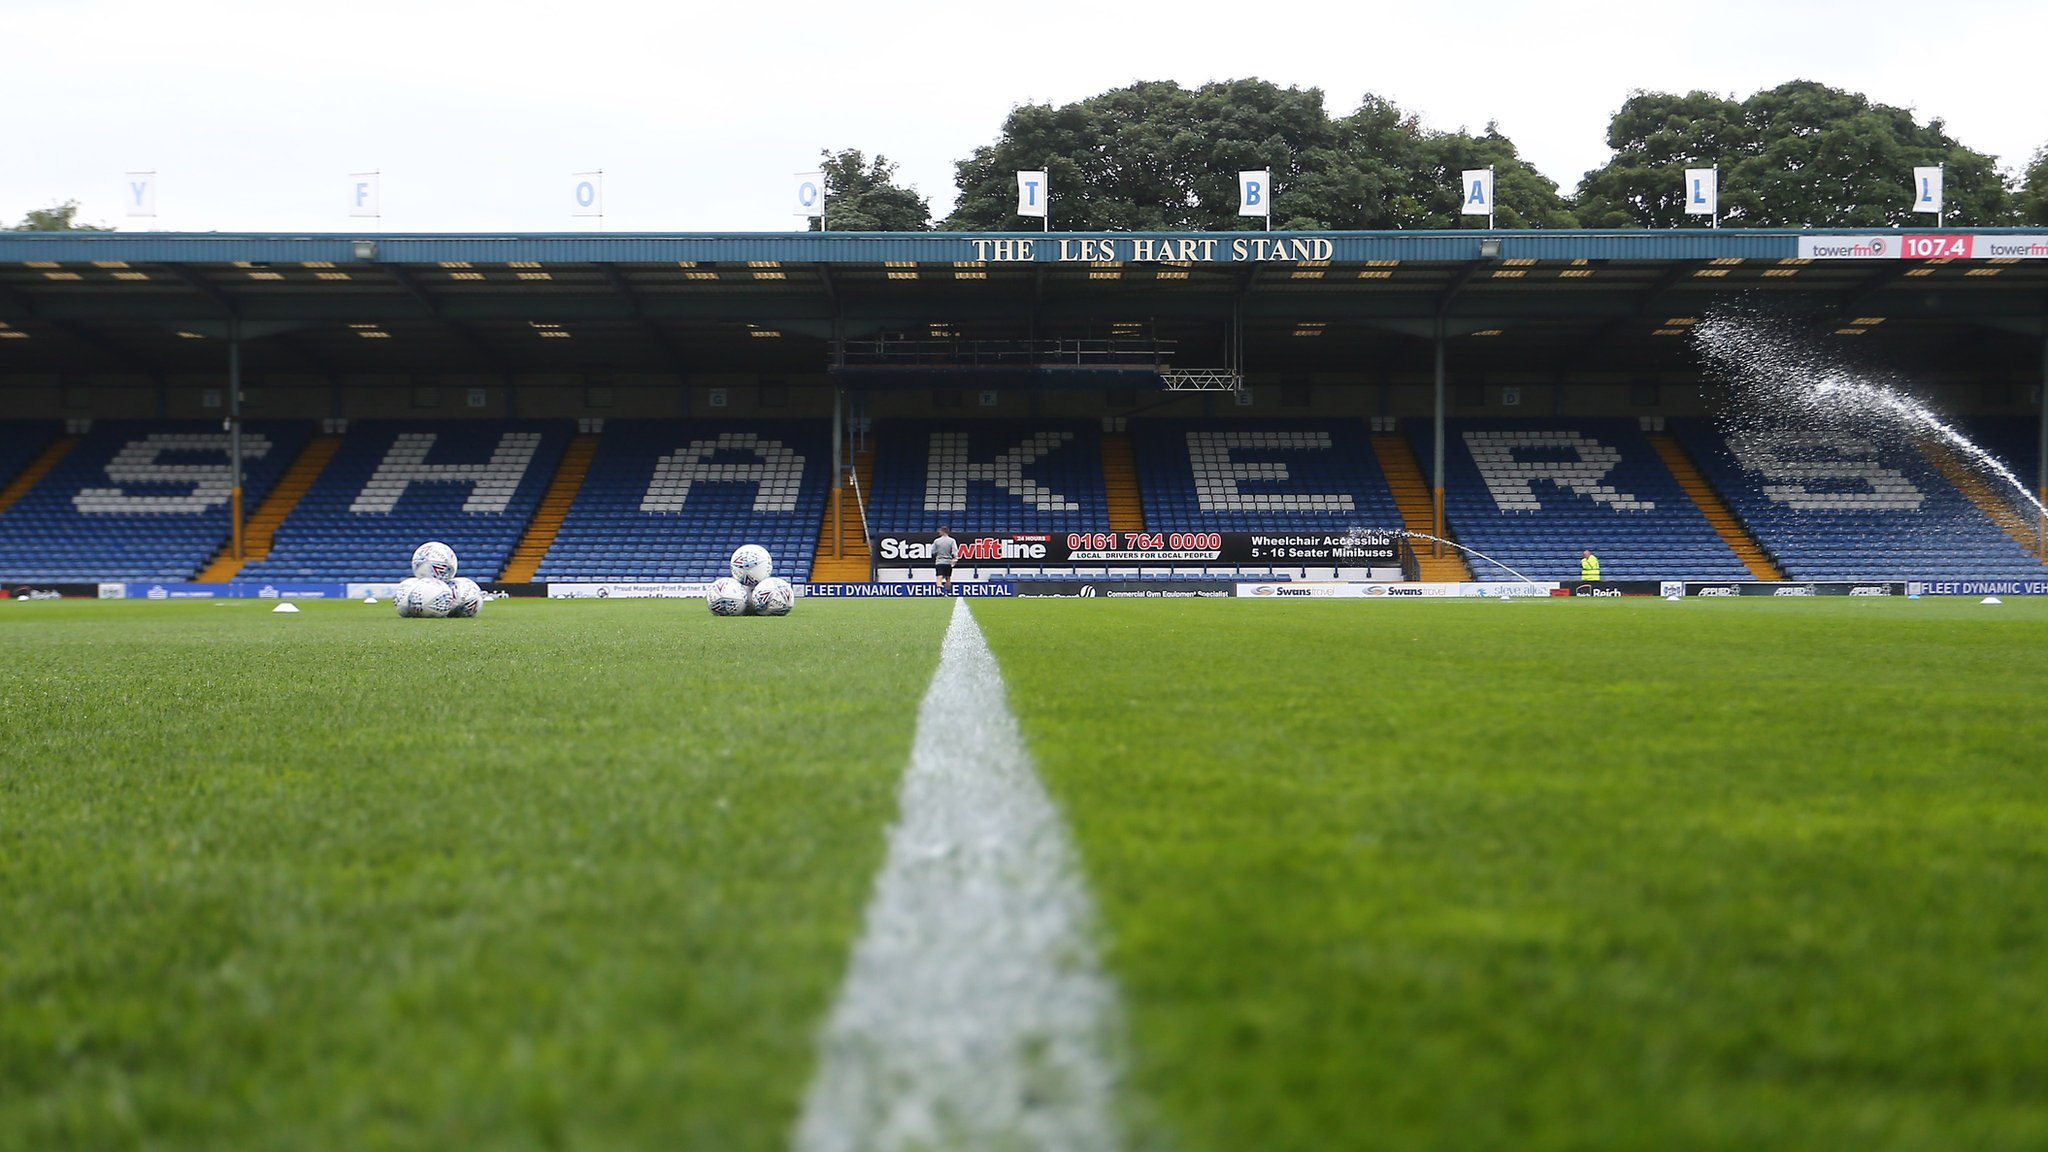 Bury's players issue statement urging chairman Steve Dale to walk away from club